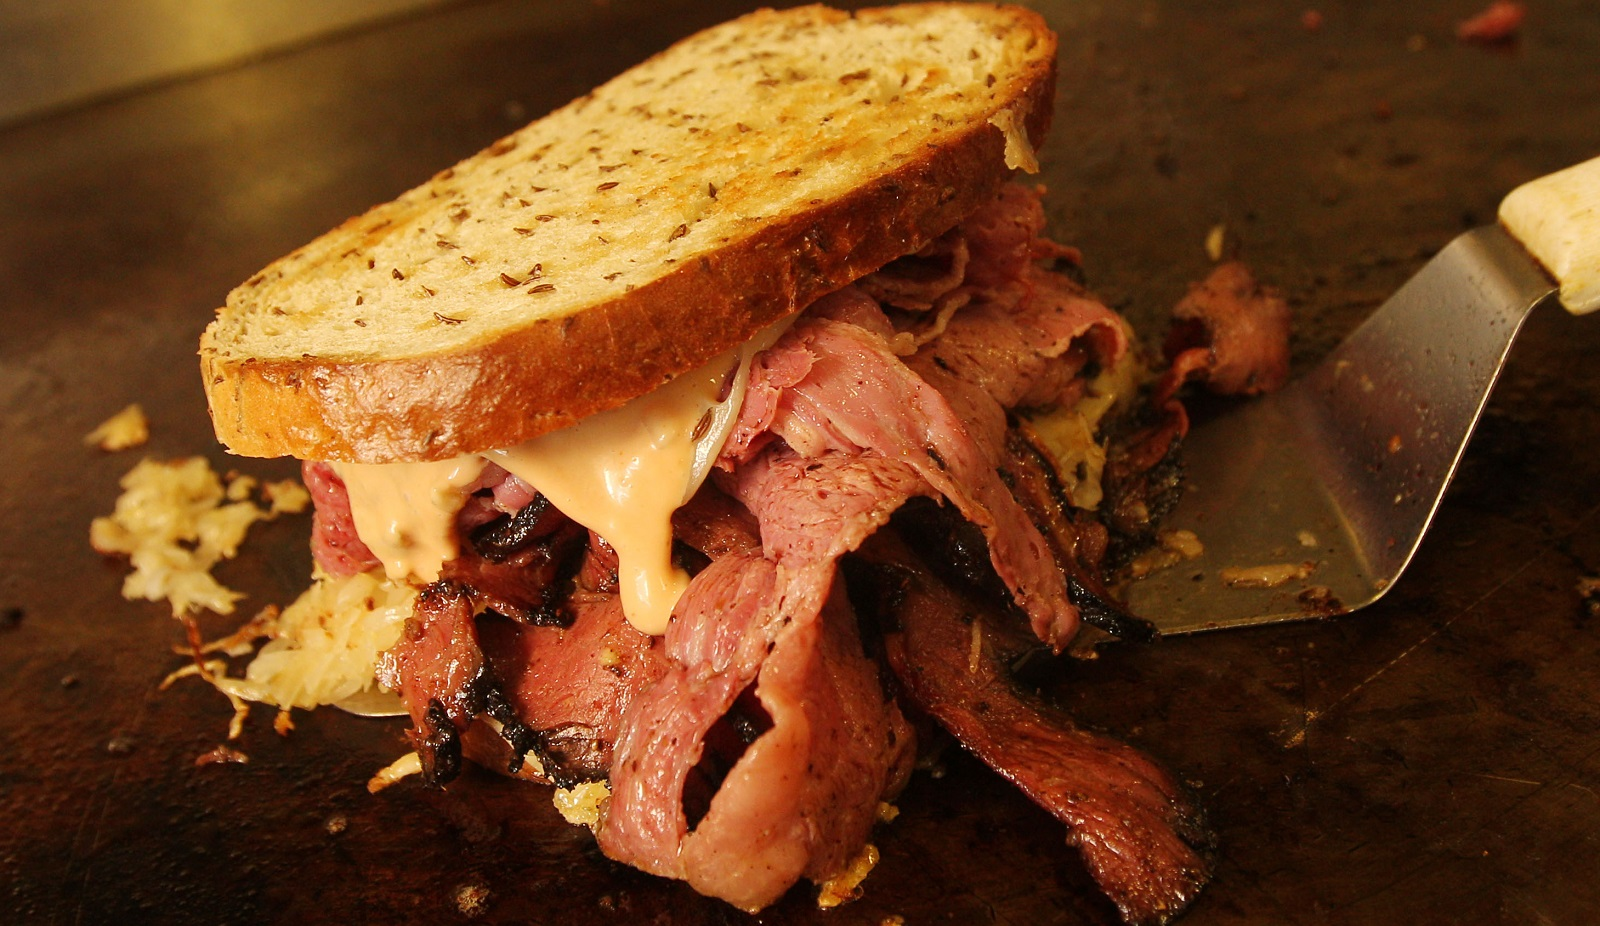 St. Patrick's Day food in Buffalo spans far behind the traditional Reuben or corned beef and cabbage. (Sharon Cantillon/Buffalo News file photo)